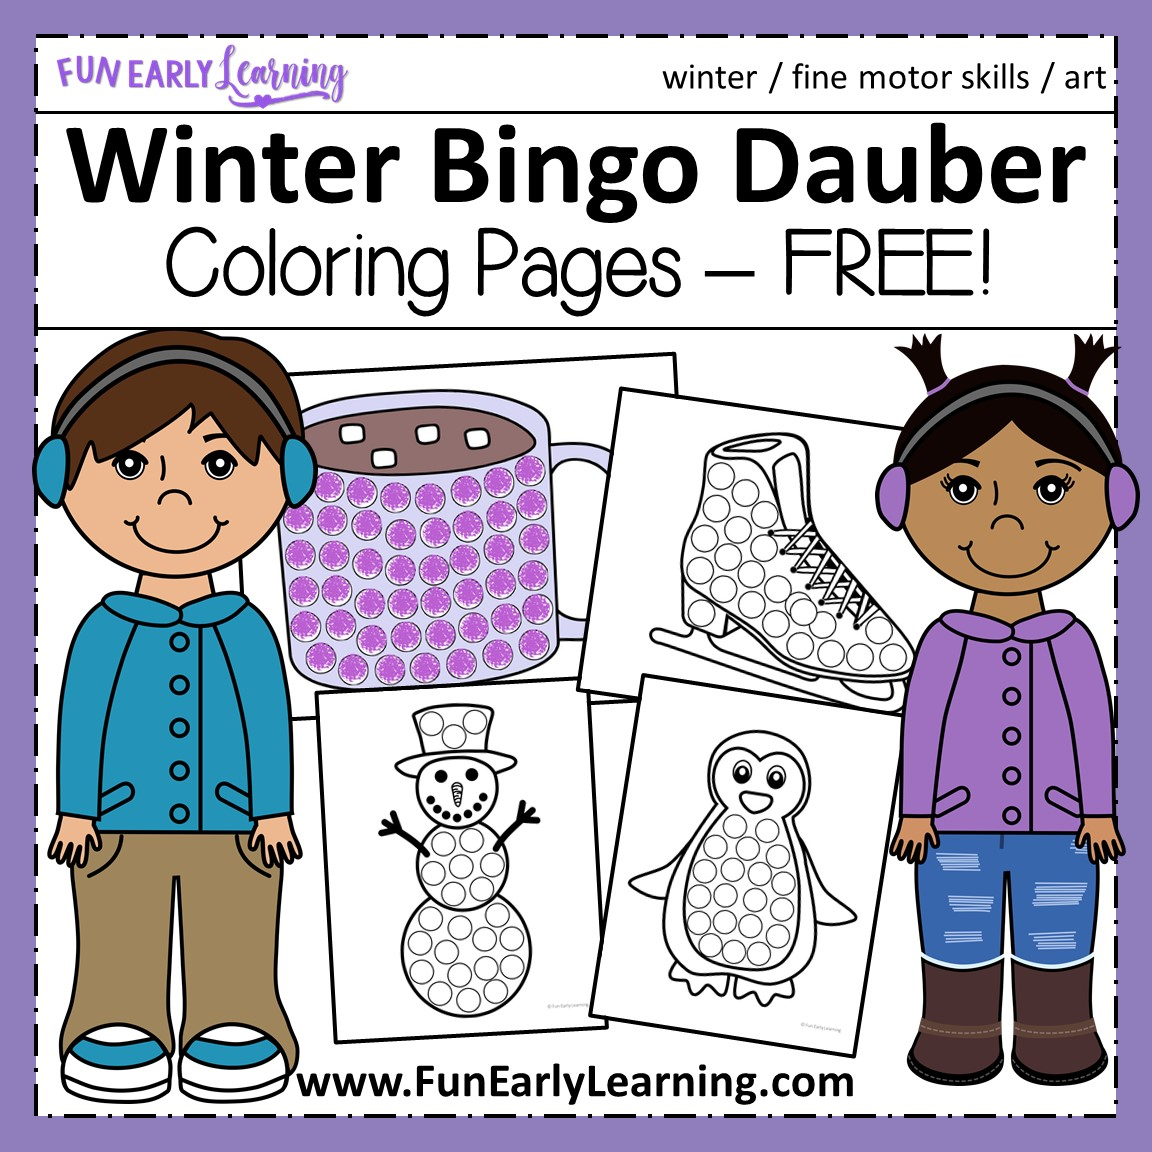 download free to instantly download winter bingo dauber coloring pages